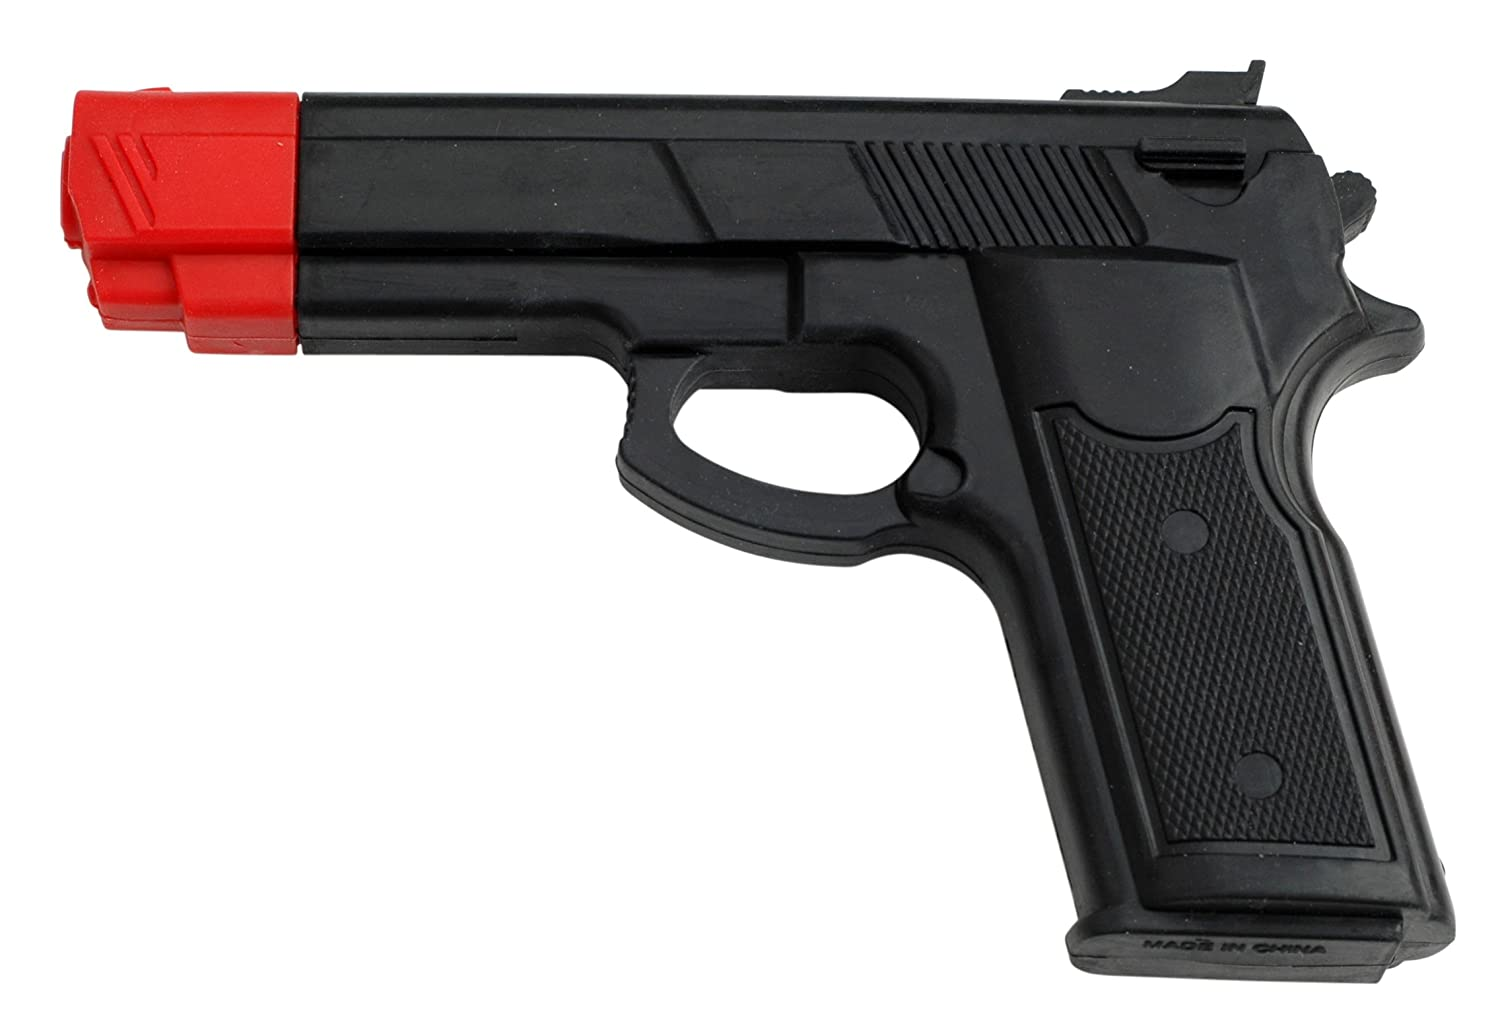 BladesUSA Rubber Training Gun